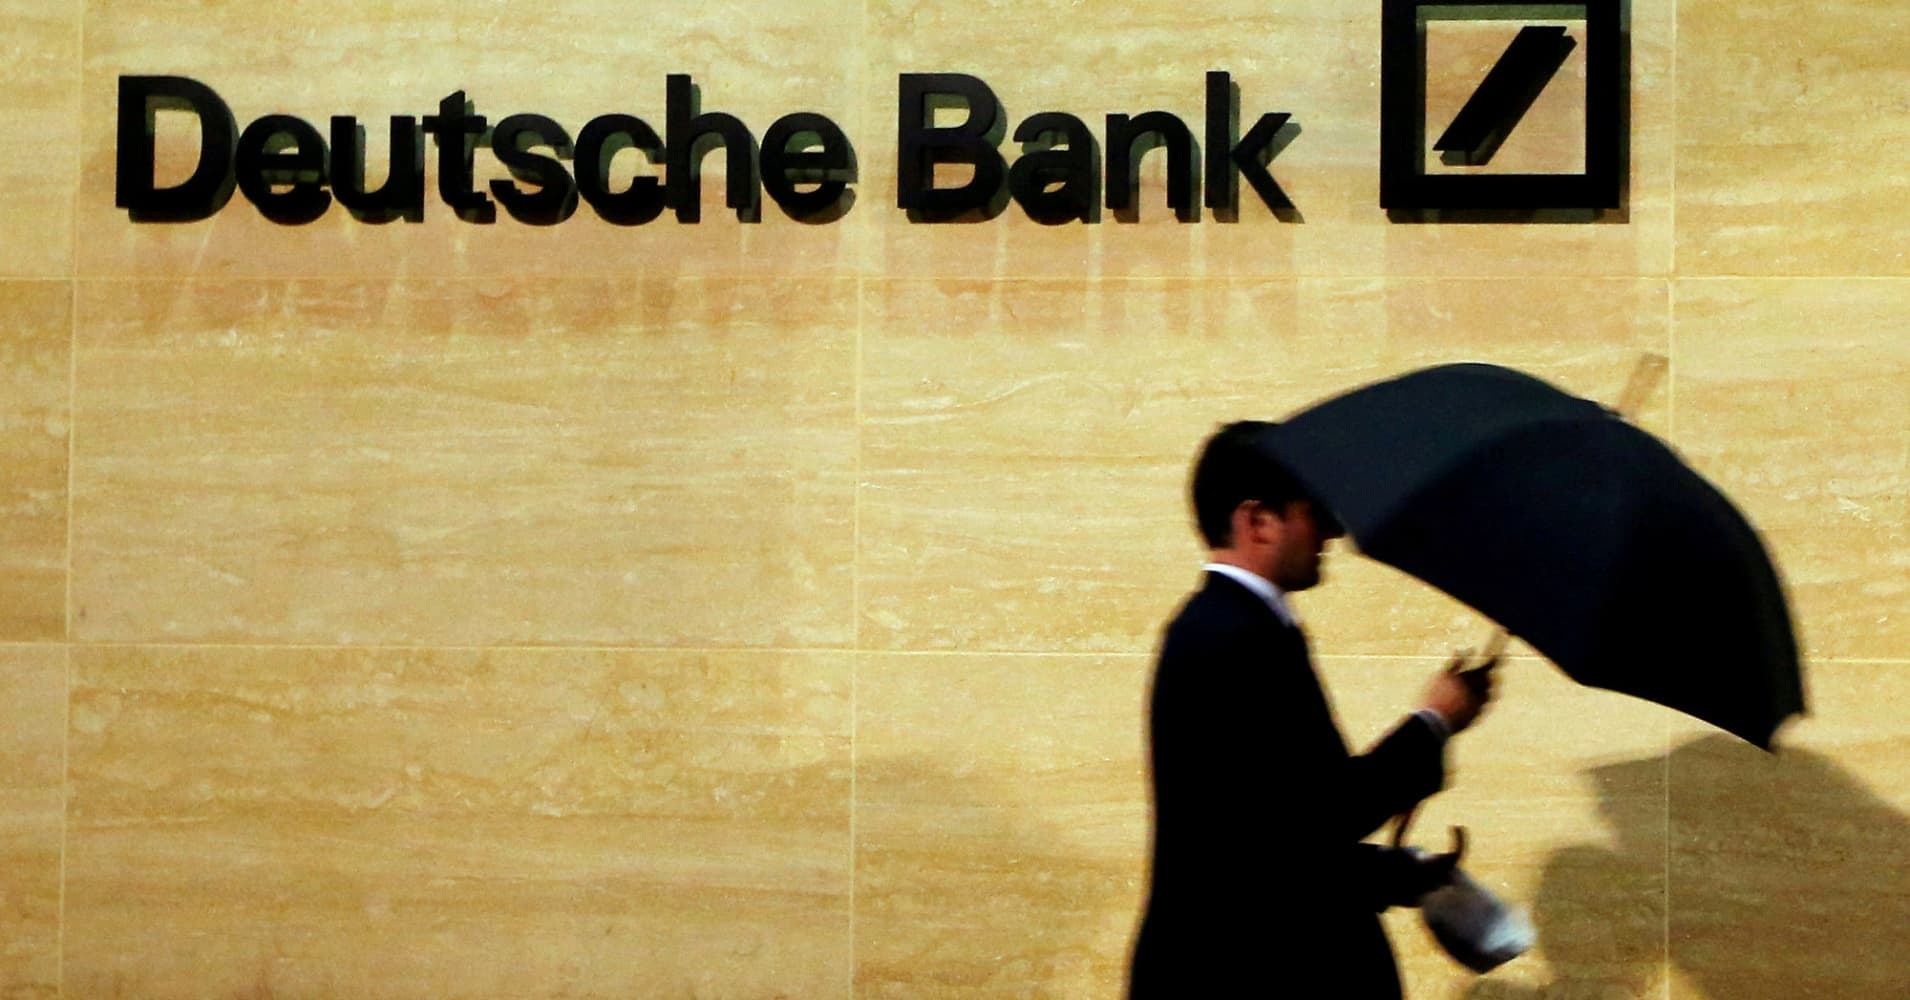 Deutsche Bank lost $1.6 billion on a single trade involving Warren Buffett, WSJ says